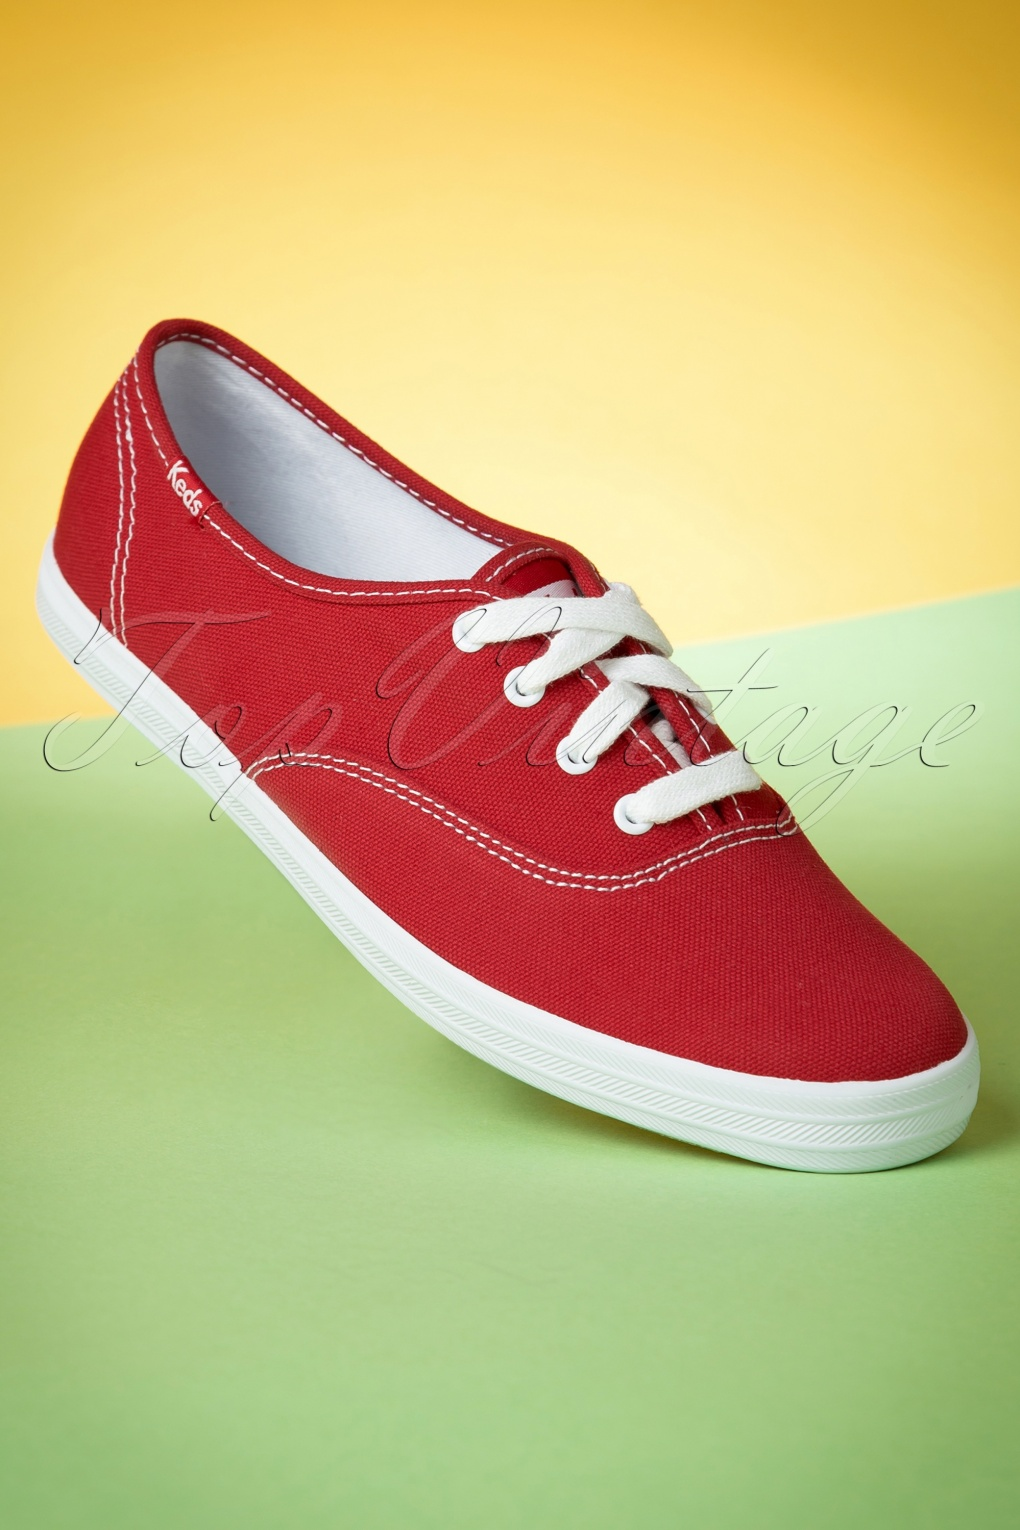 Retro sneakers 50s Champion Core Text Sneakers in Red £50.91 AT vintagedancer.com